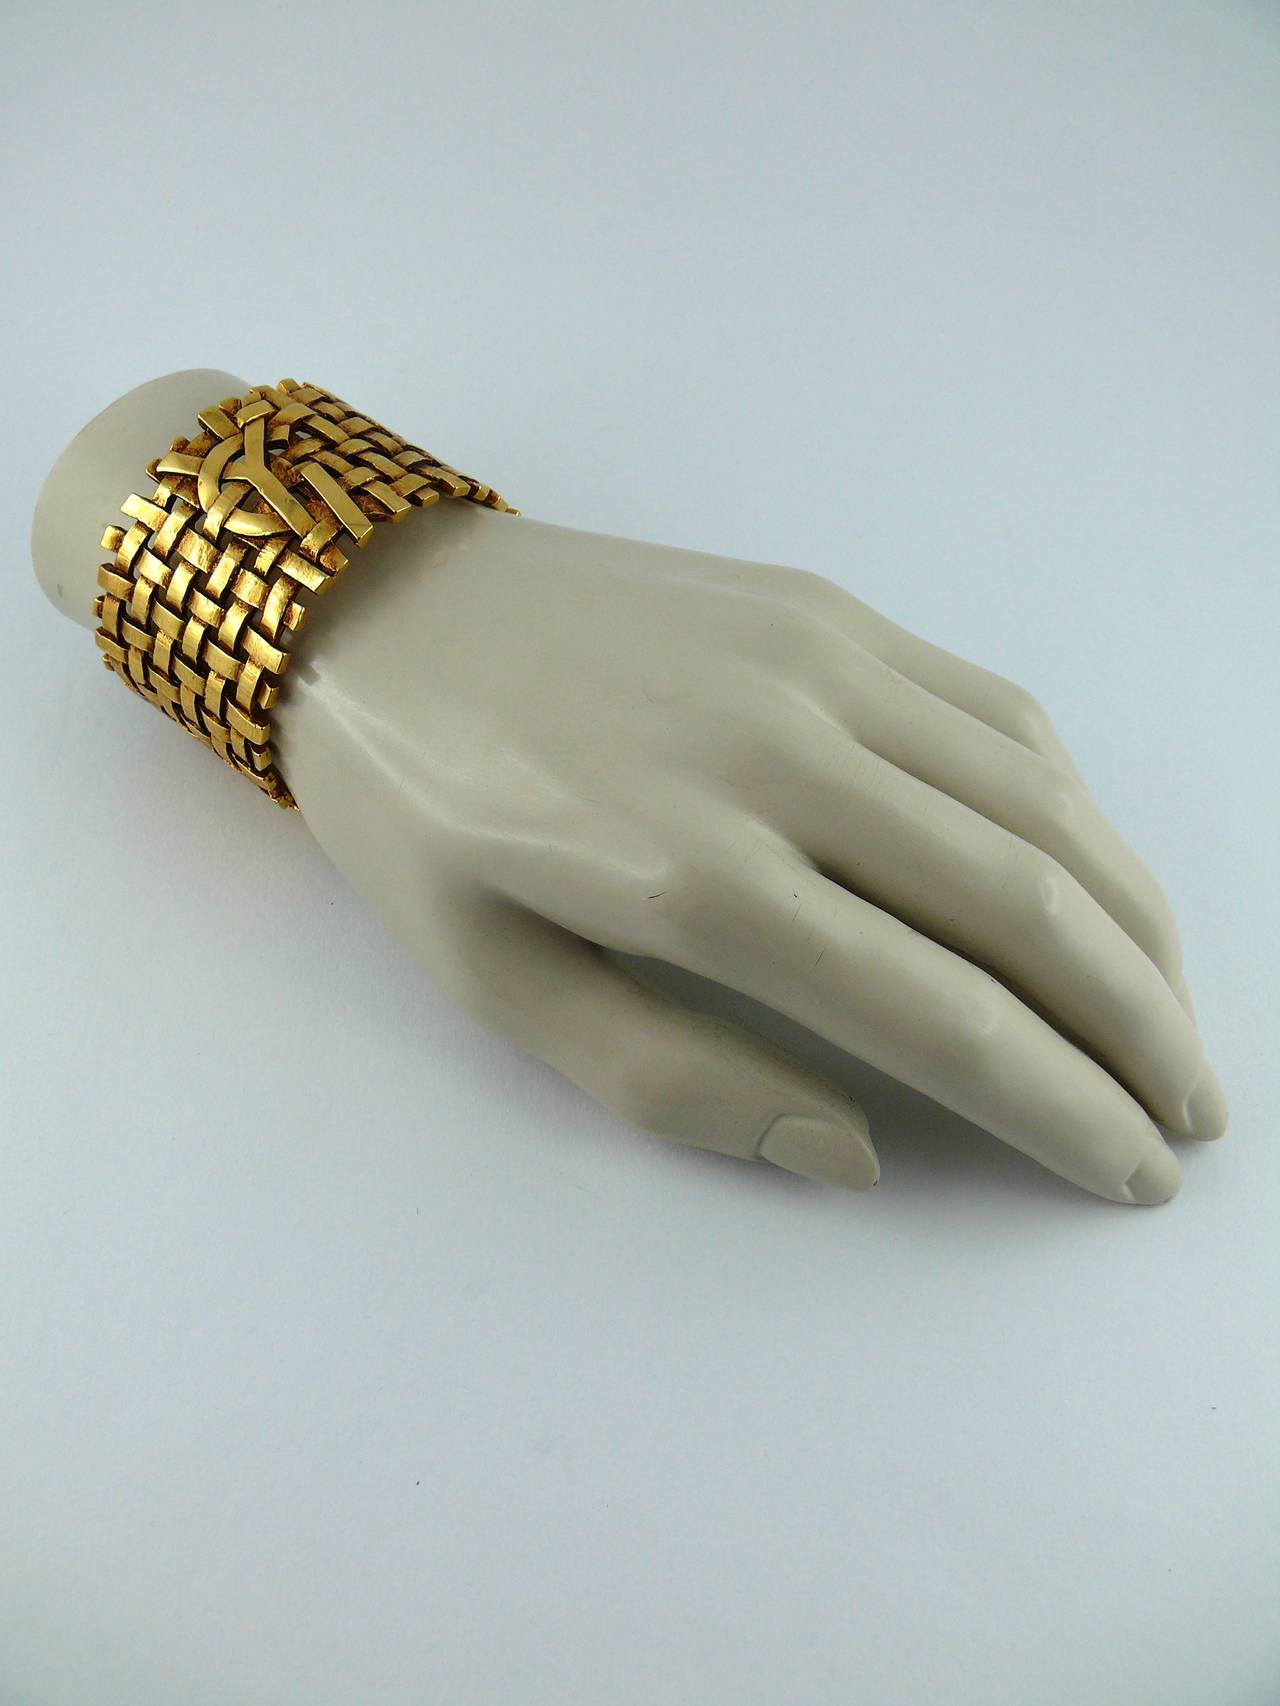 Yves Saint Laurent YSL Vintage Gold Toned Woven Cuff Bracelet In Excellent Condition For Sale In French Riviera, FR